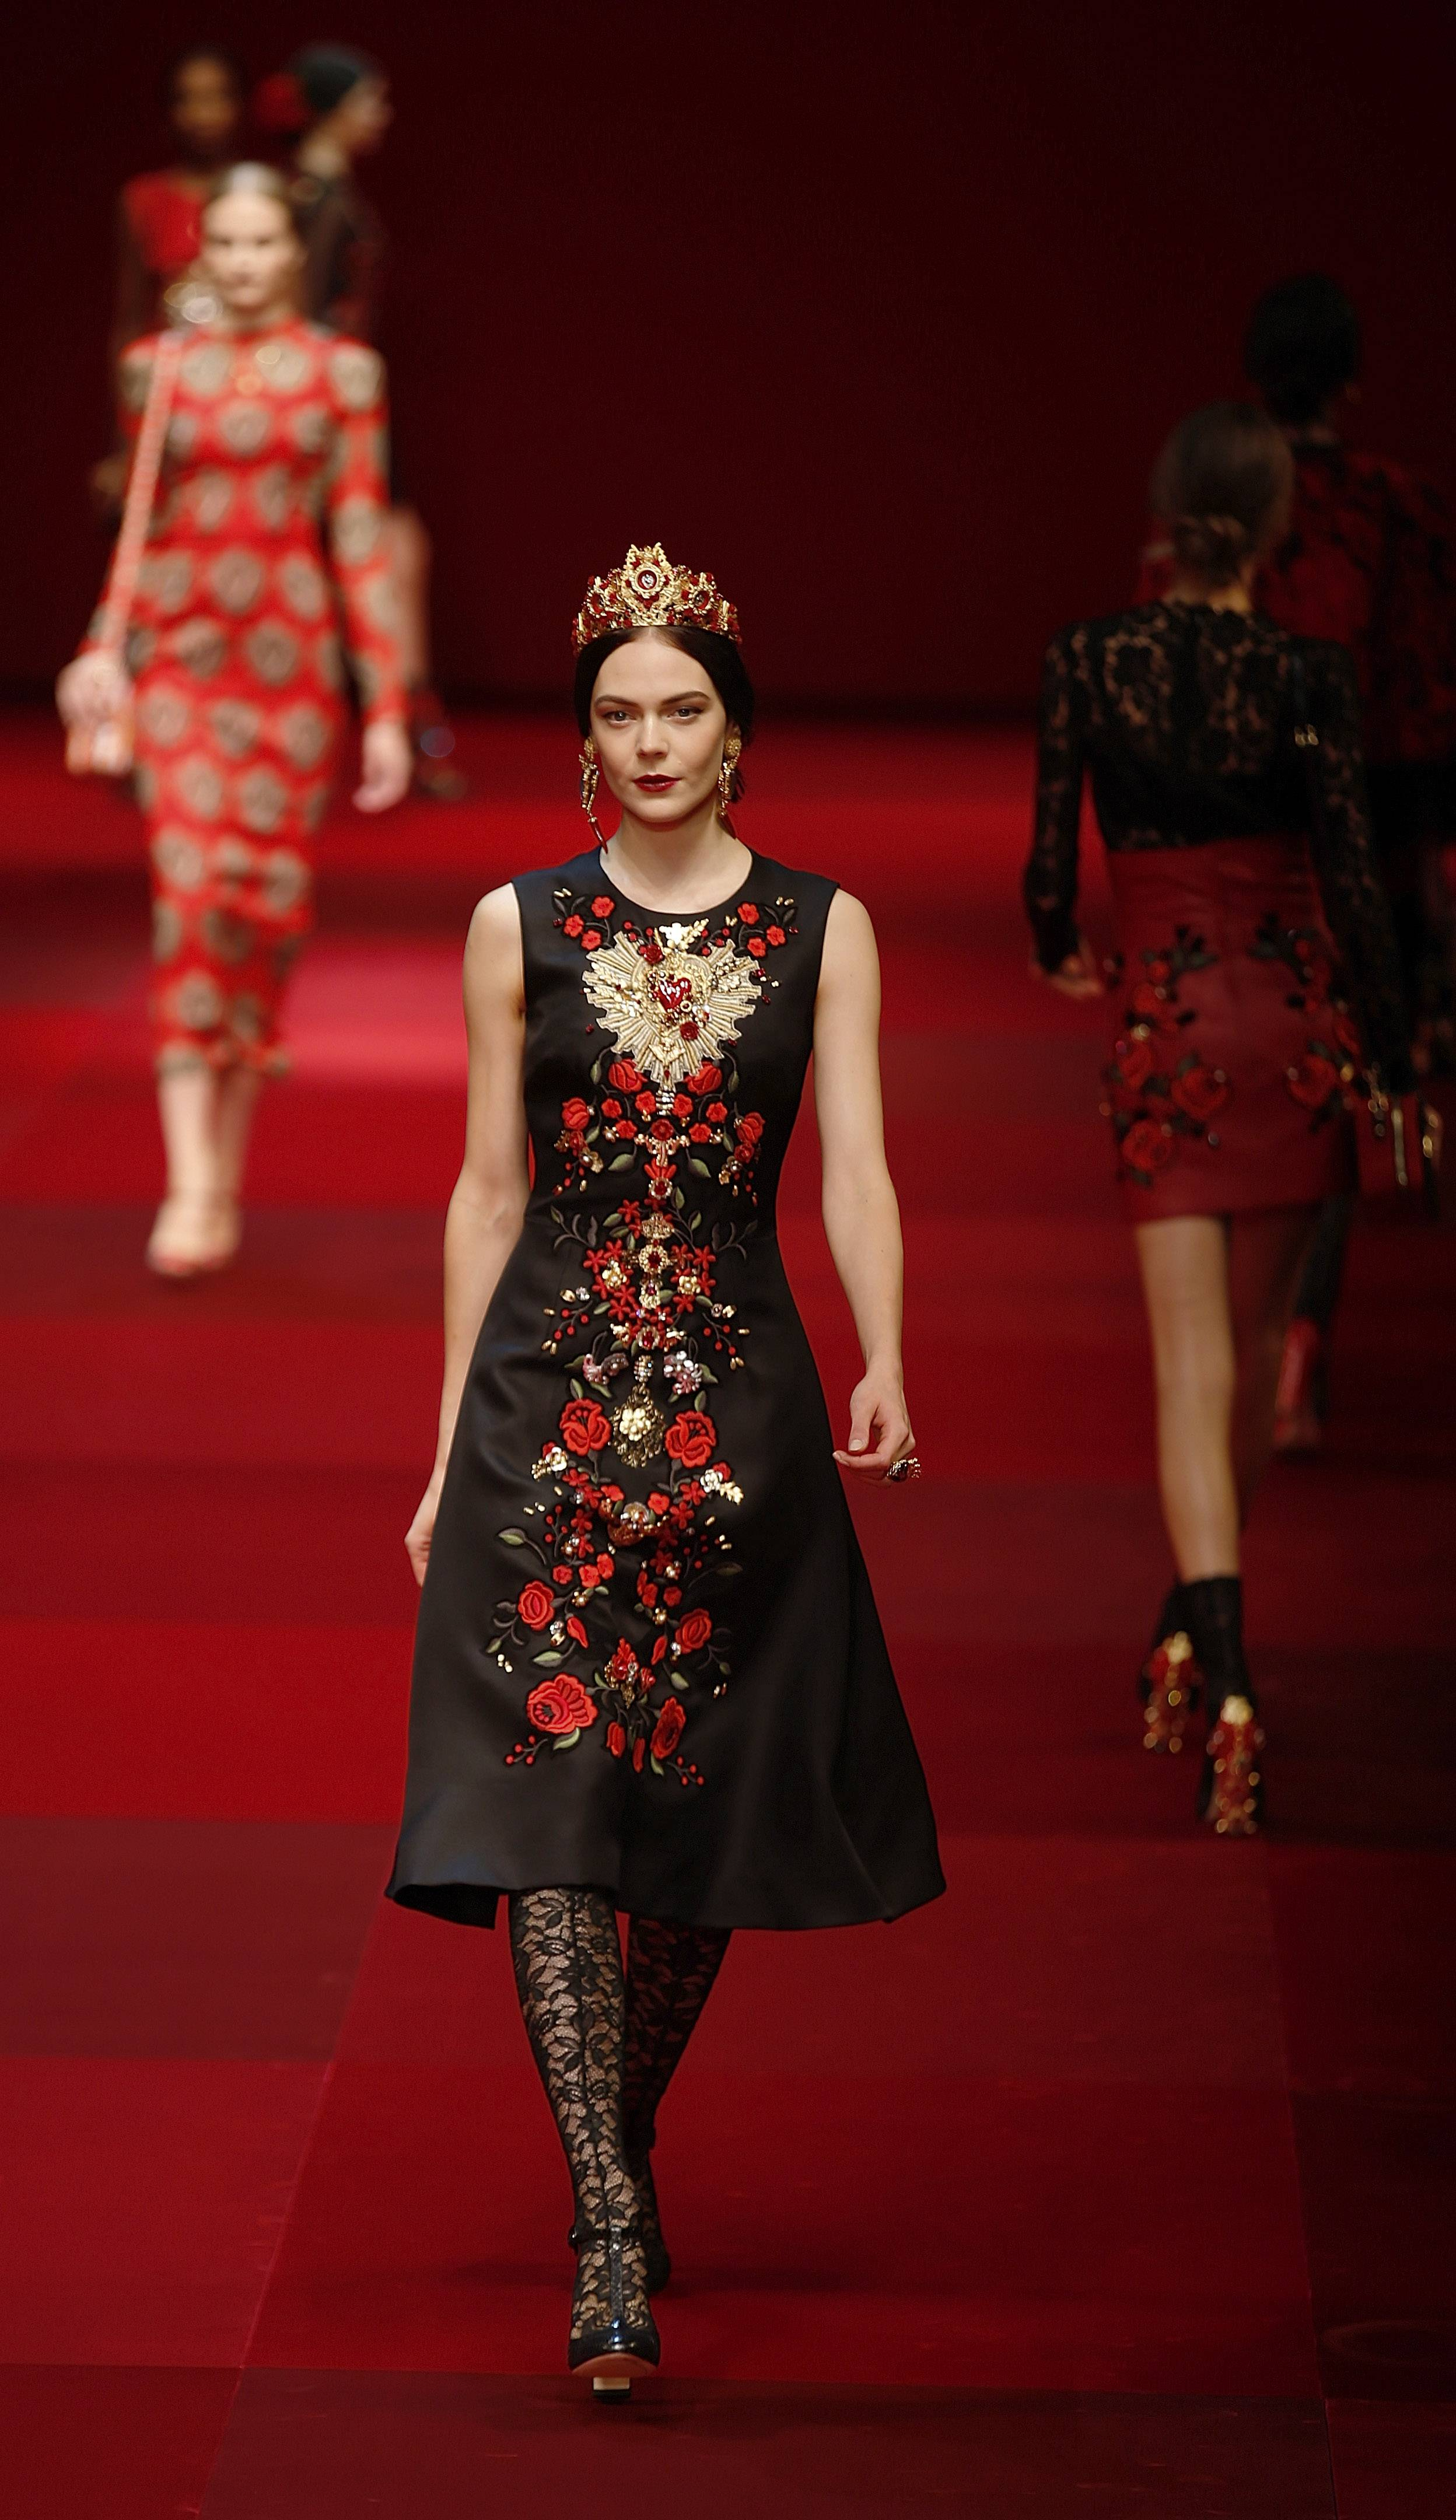 Dolce&Gabbana looks to Spain for influences in its women's spring-summer 2015 collection, unveiled during Milan Fashion Week Sunday.